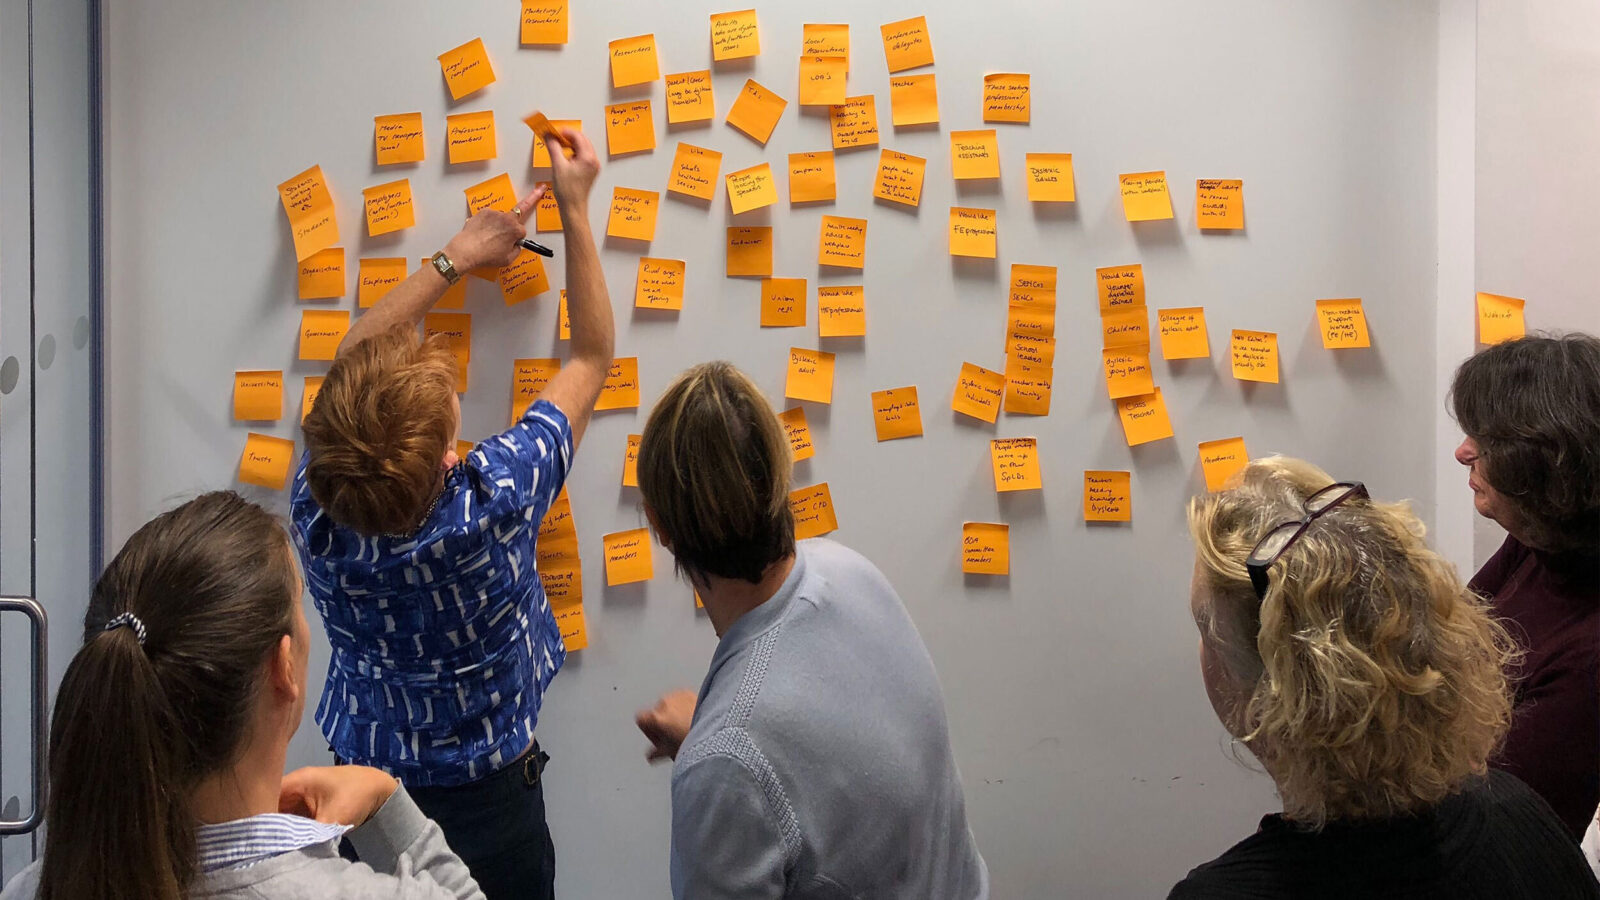 Five people taking part in a website discovery session. Multiple post-it notes are stuck to the wall ready for assessment.